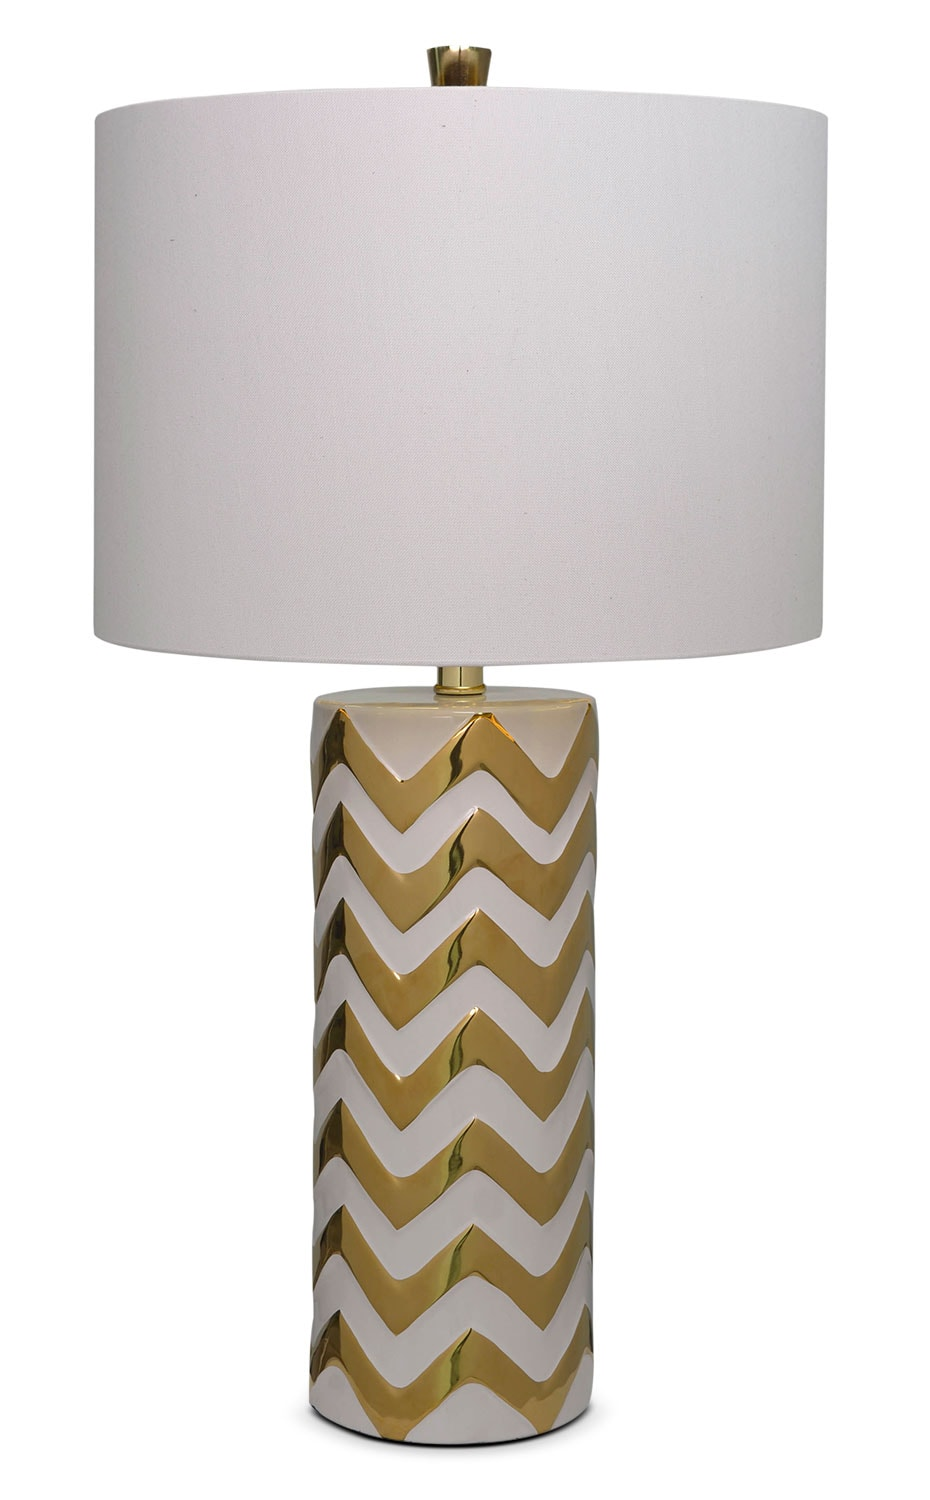 "Penelope 27"" Table Lamp - Gold and Beige"